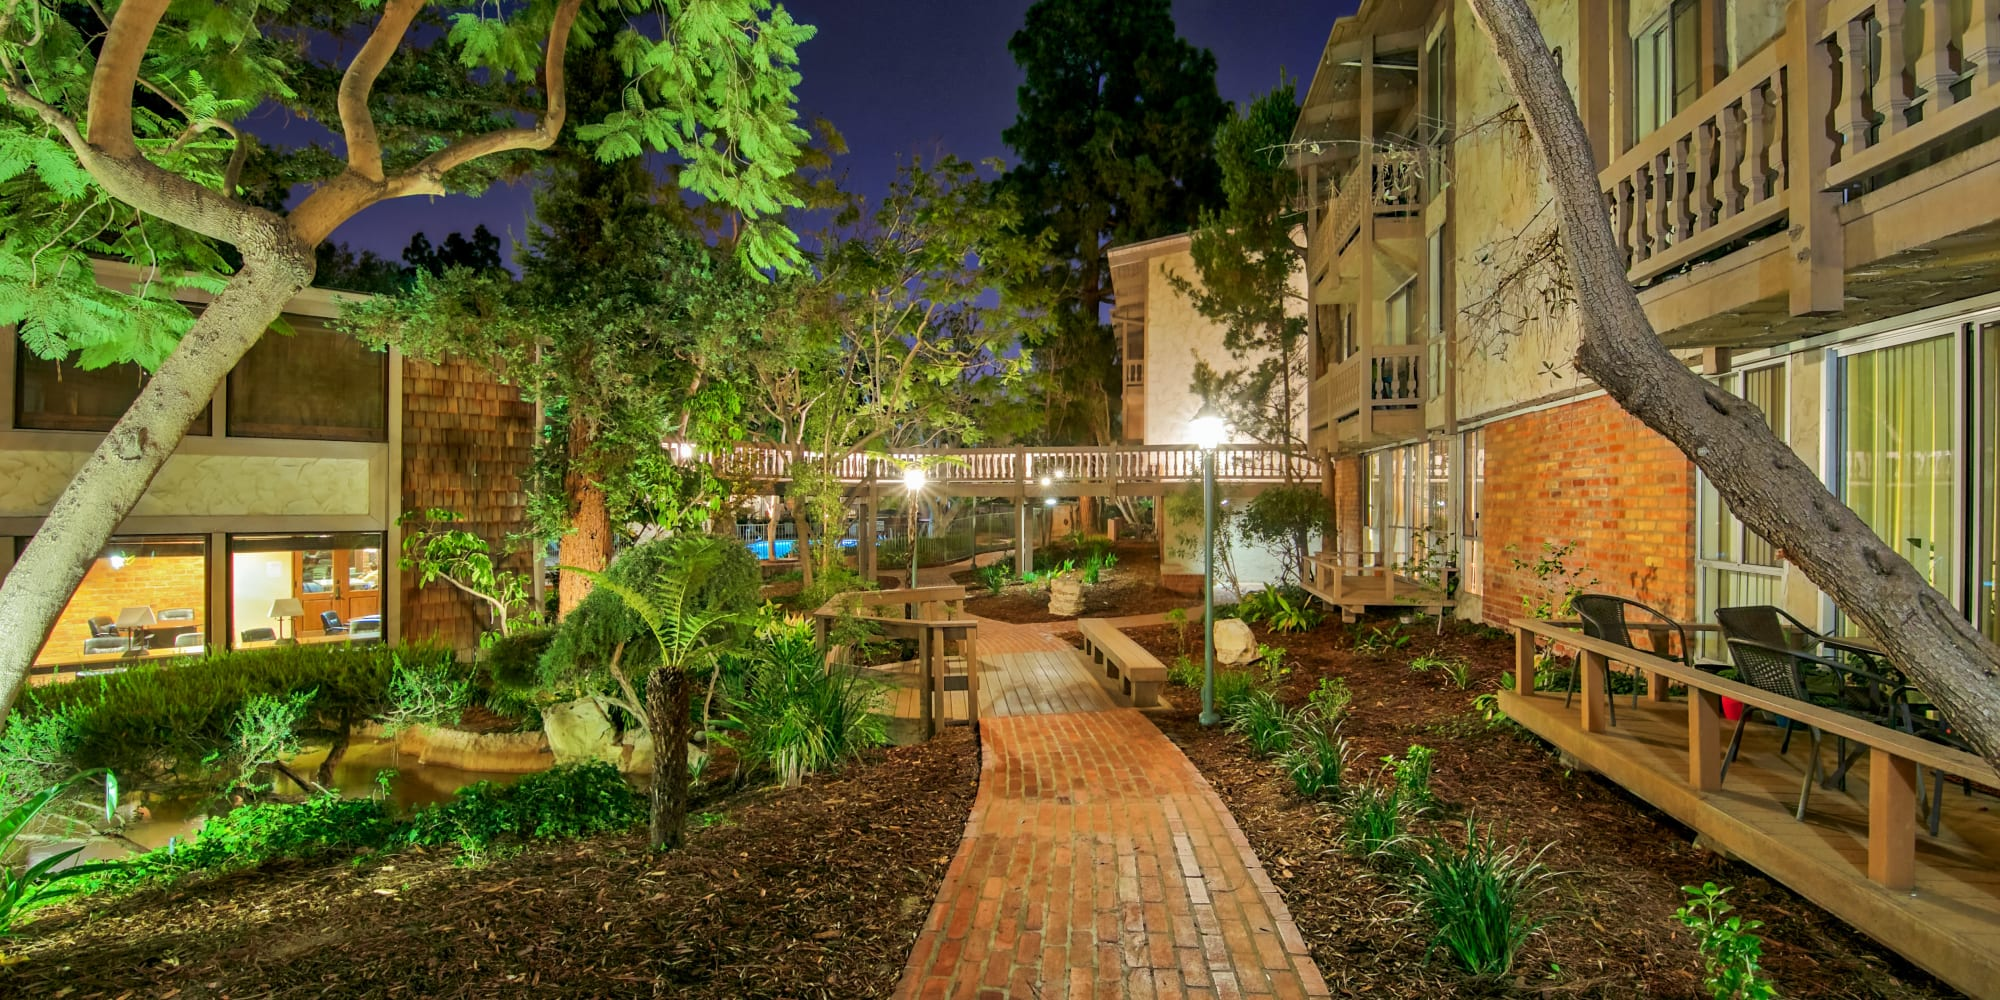 Brick walking path surrounded by lush landscaping between resident buildings at The Meadows in Culver City, California